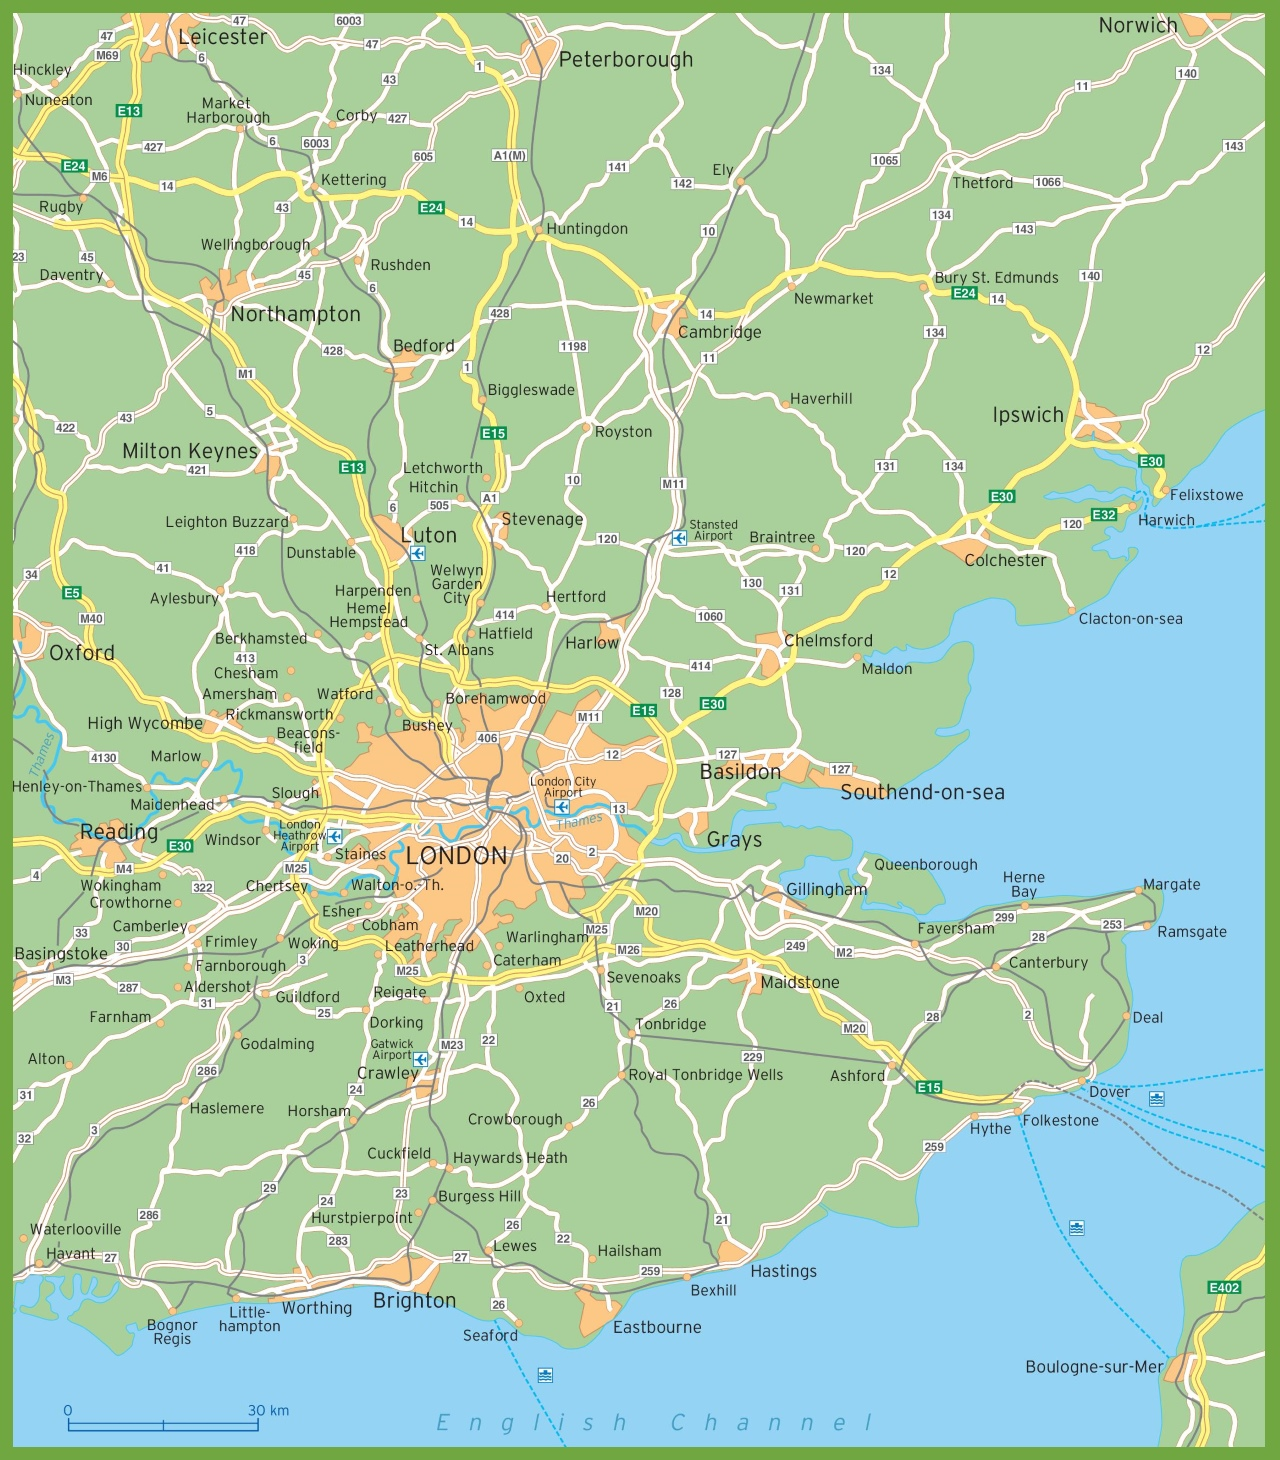 Map Of Areas Of London.London Surroundings Map